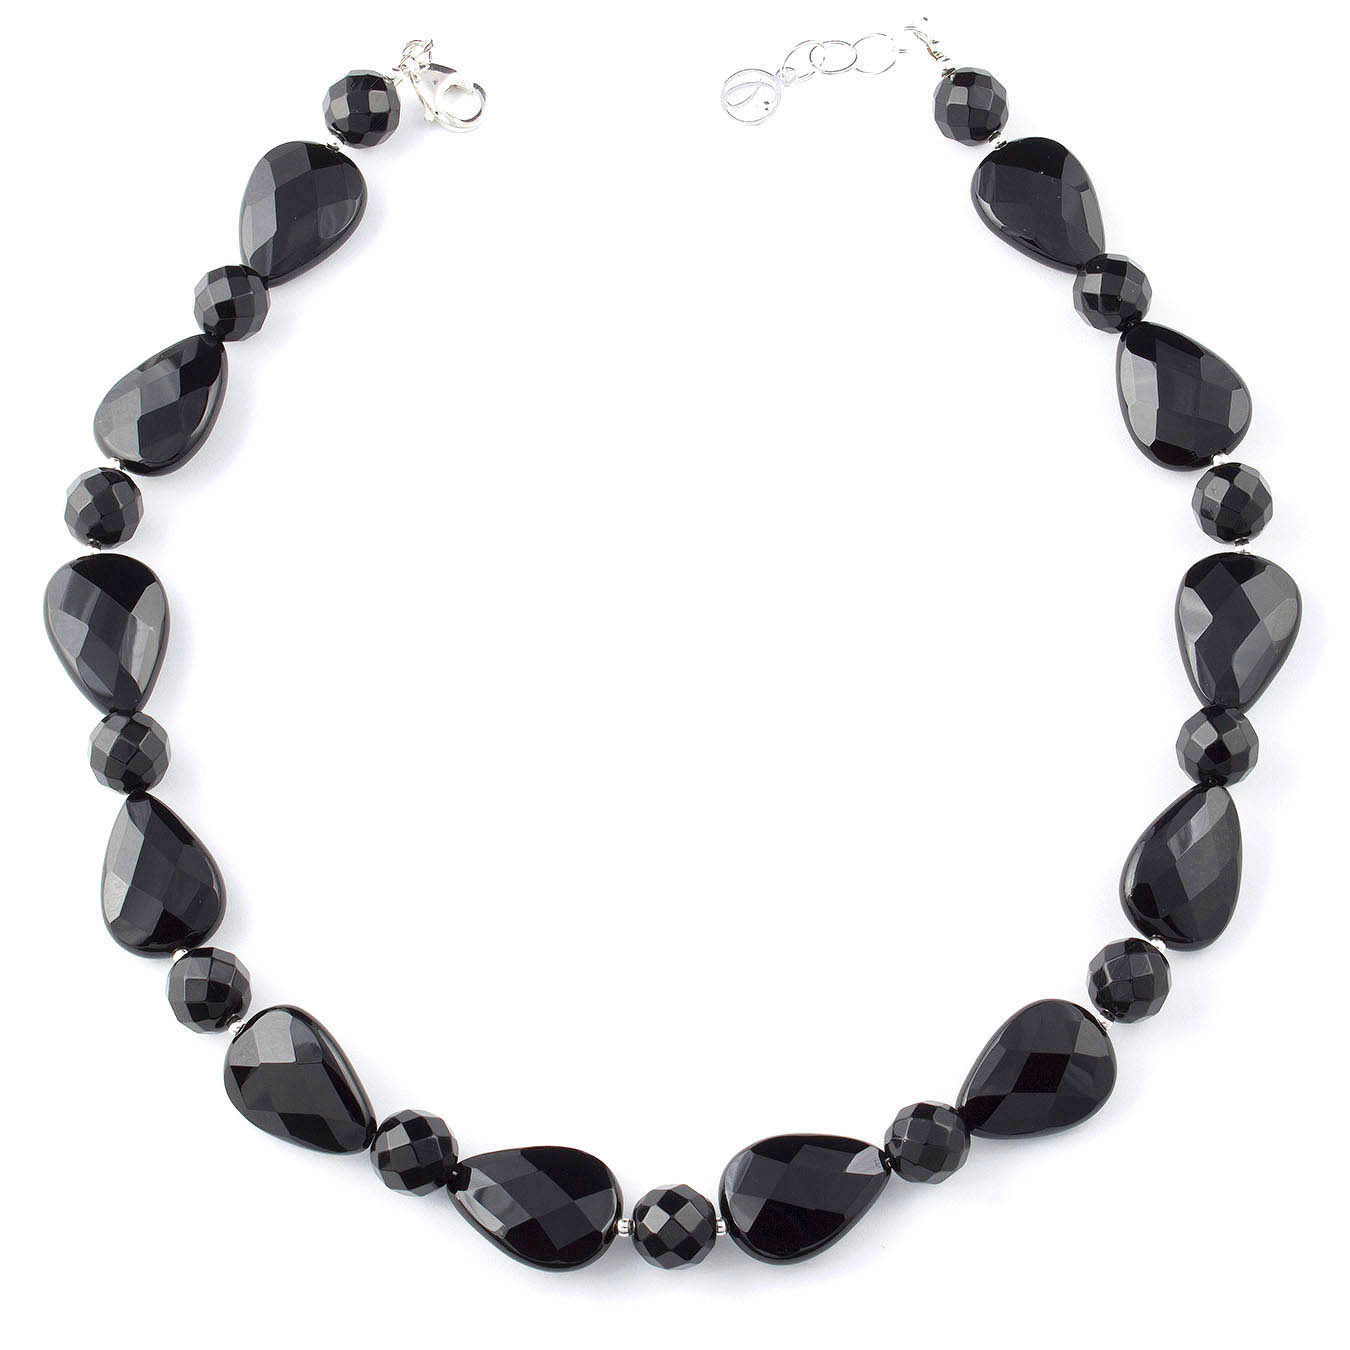 Beaded jewelry necklace made with faceted teardrop black agate